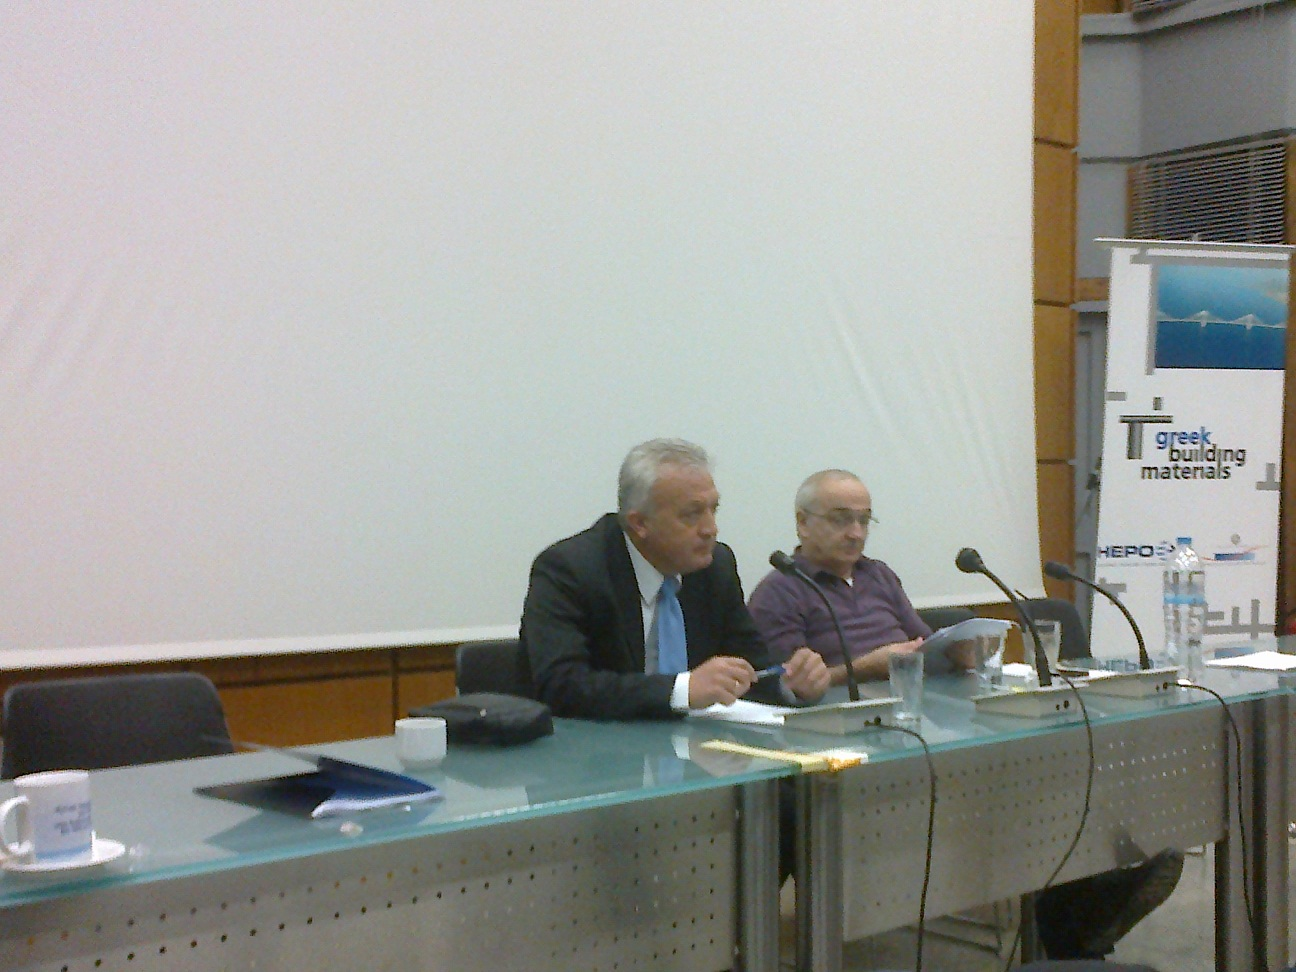 The former Chairman of EDOAO Sotiris Ioannou and the current Chairman Markos Kafouros